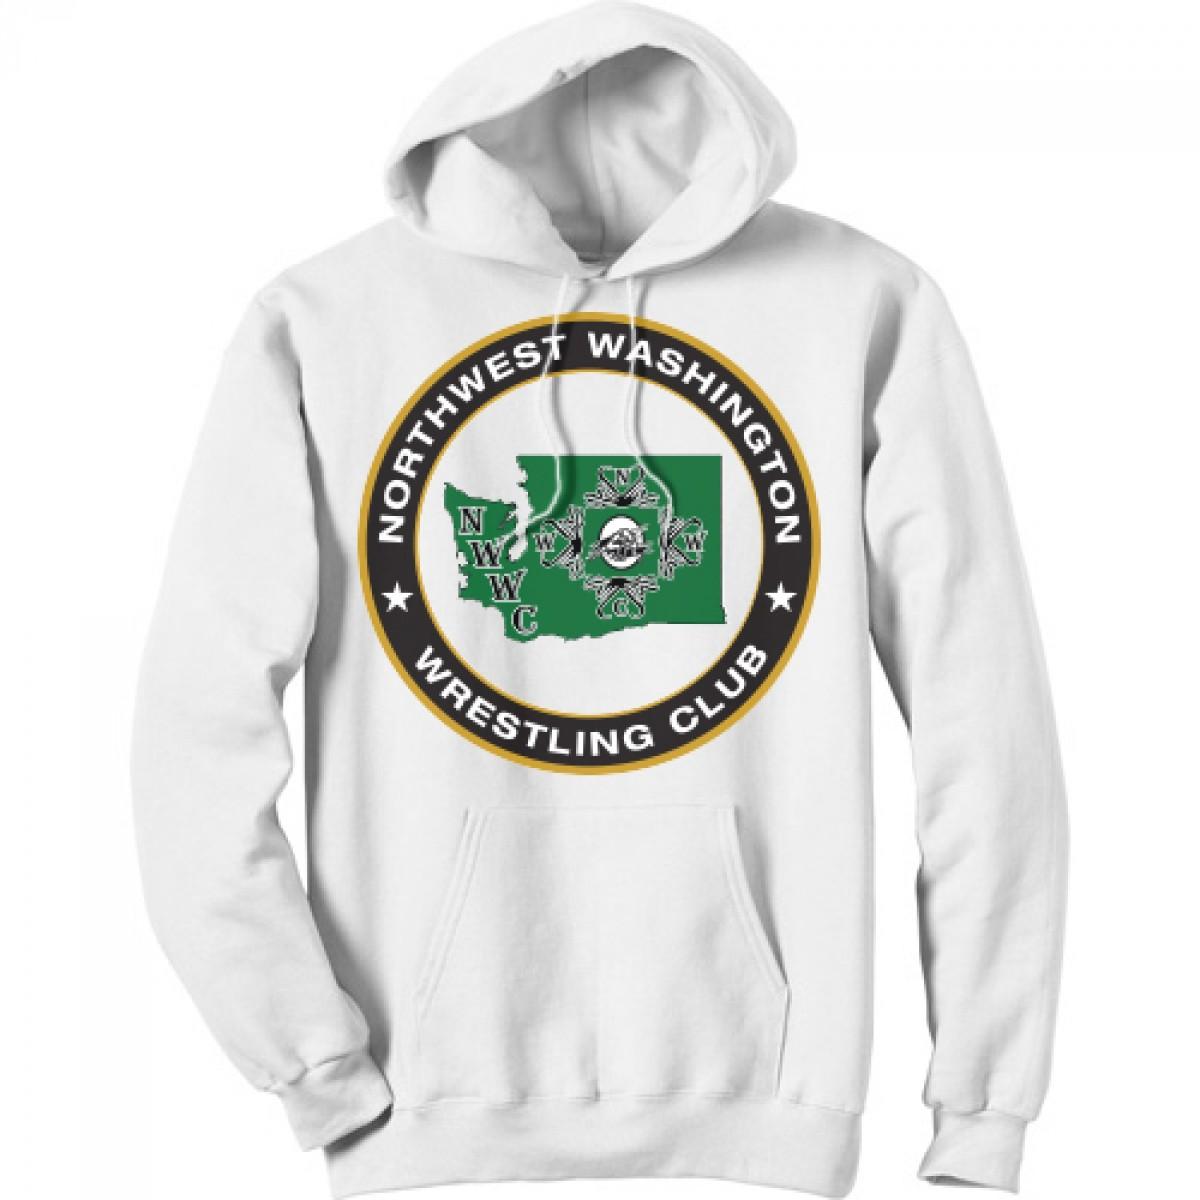 NWWC White Hoodie With Green Logo-White-YL